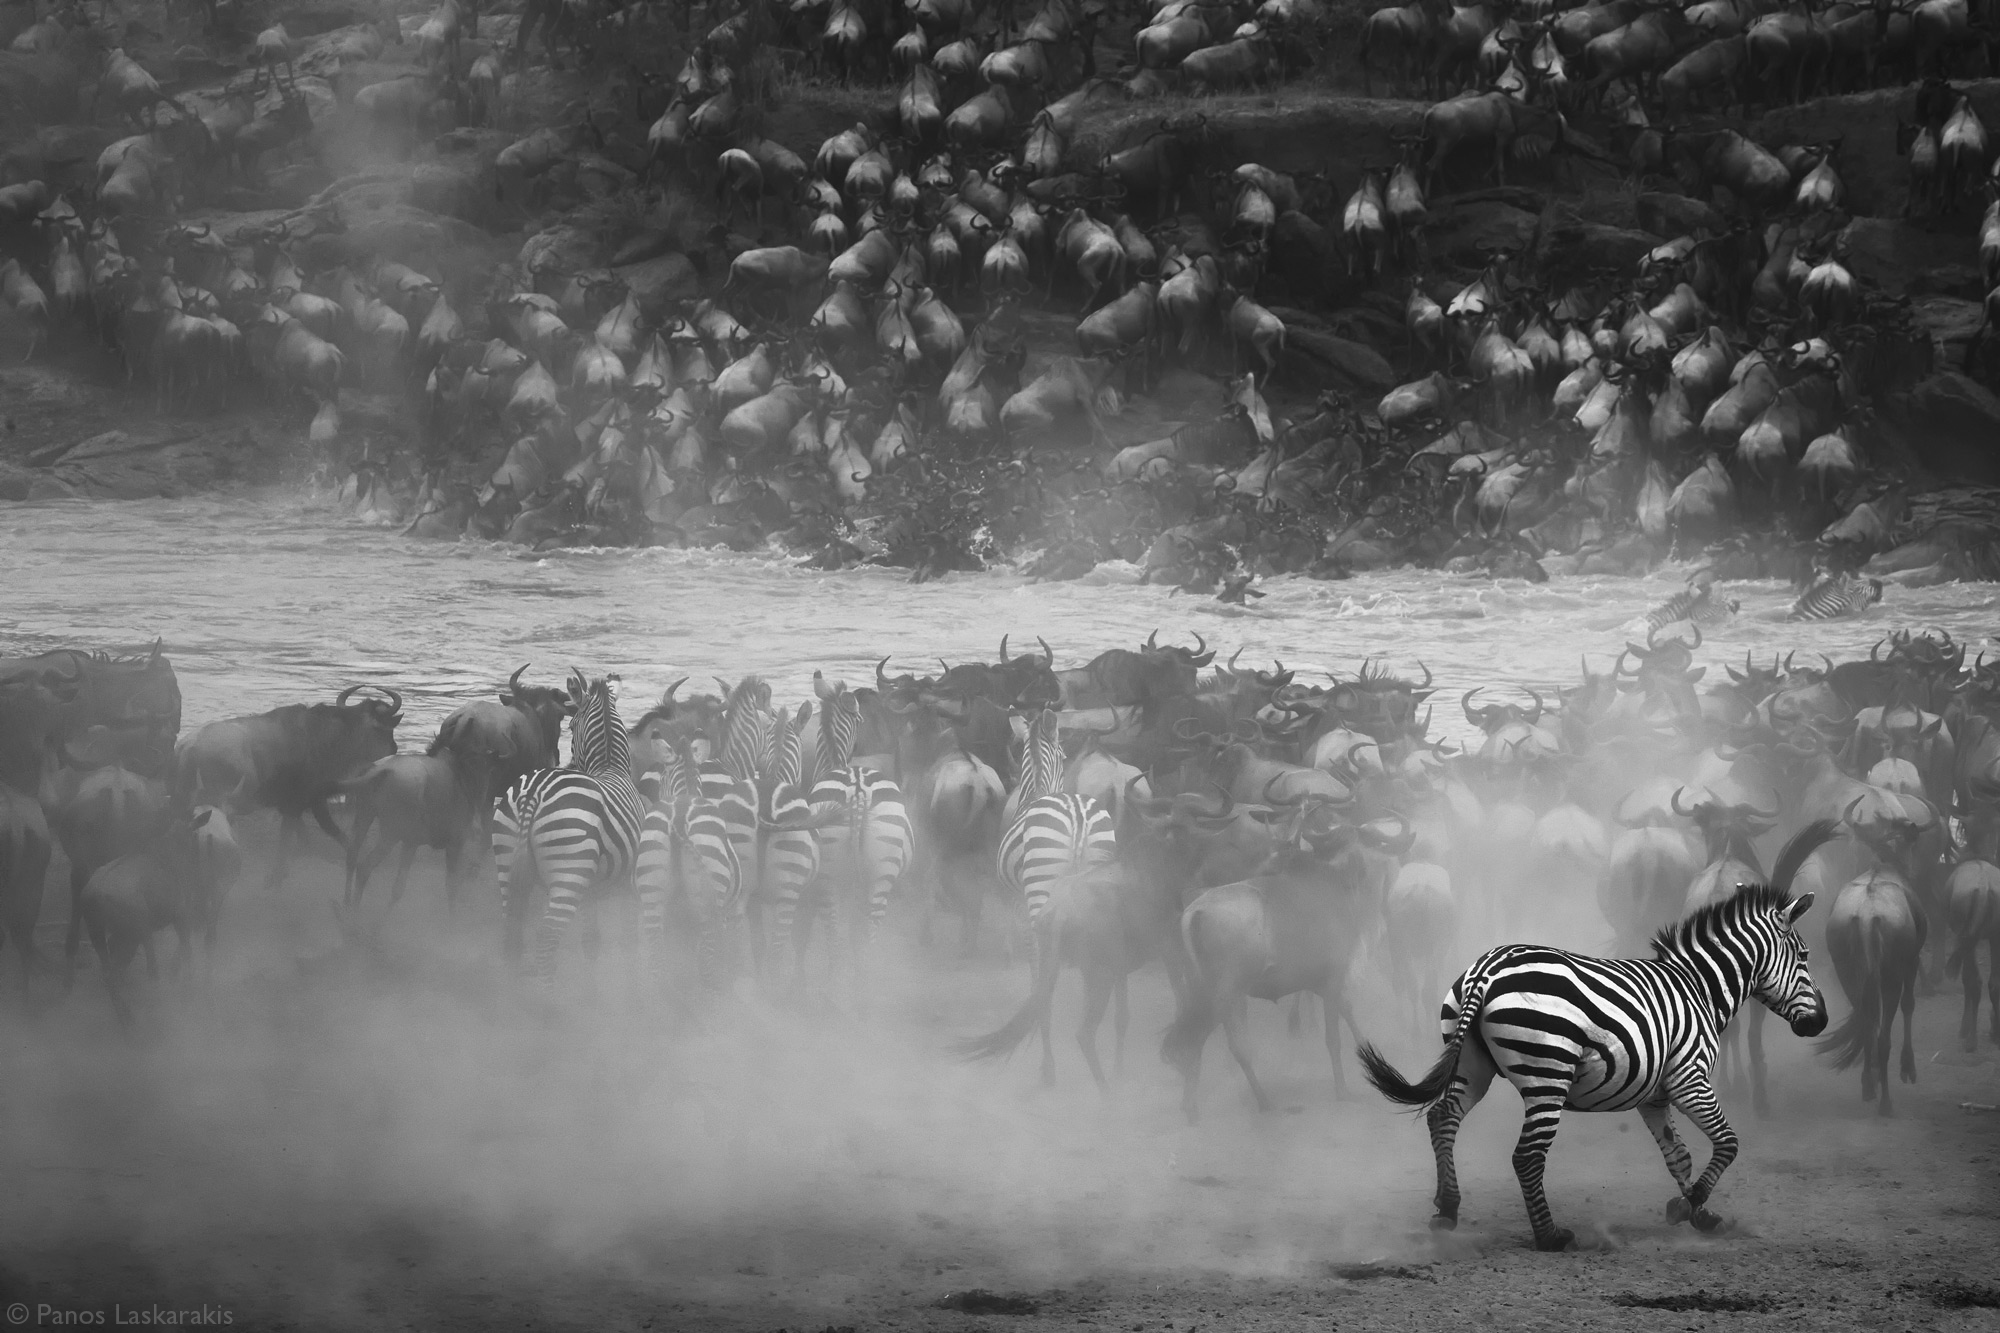 Wildbeest and zebras at the Mara River crossing in Kenya